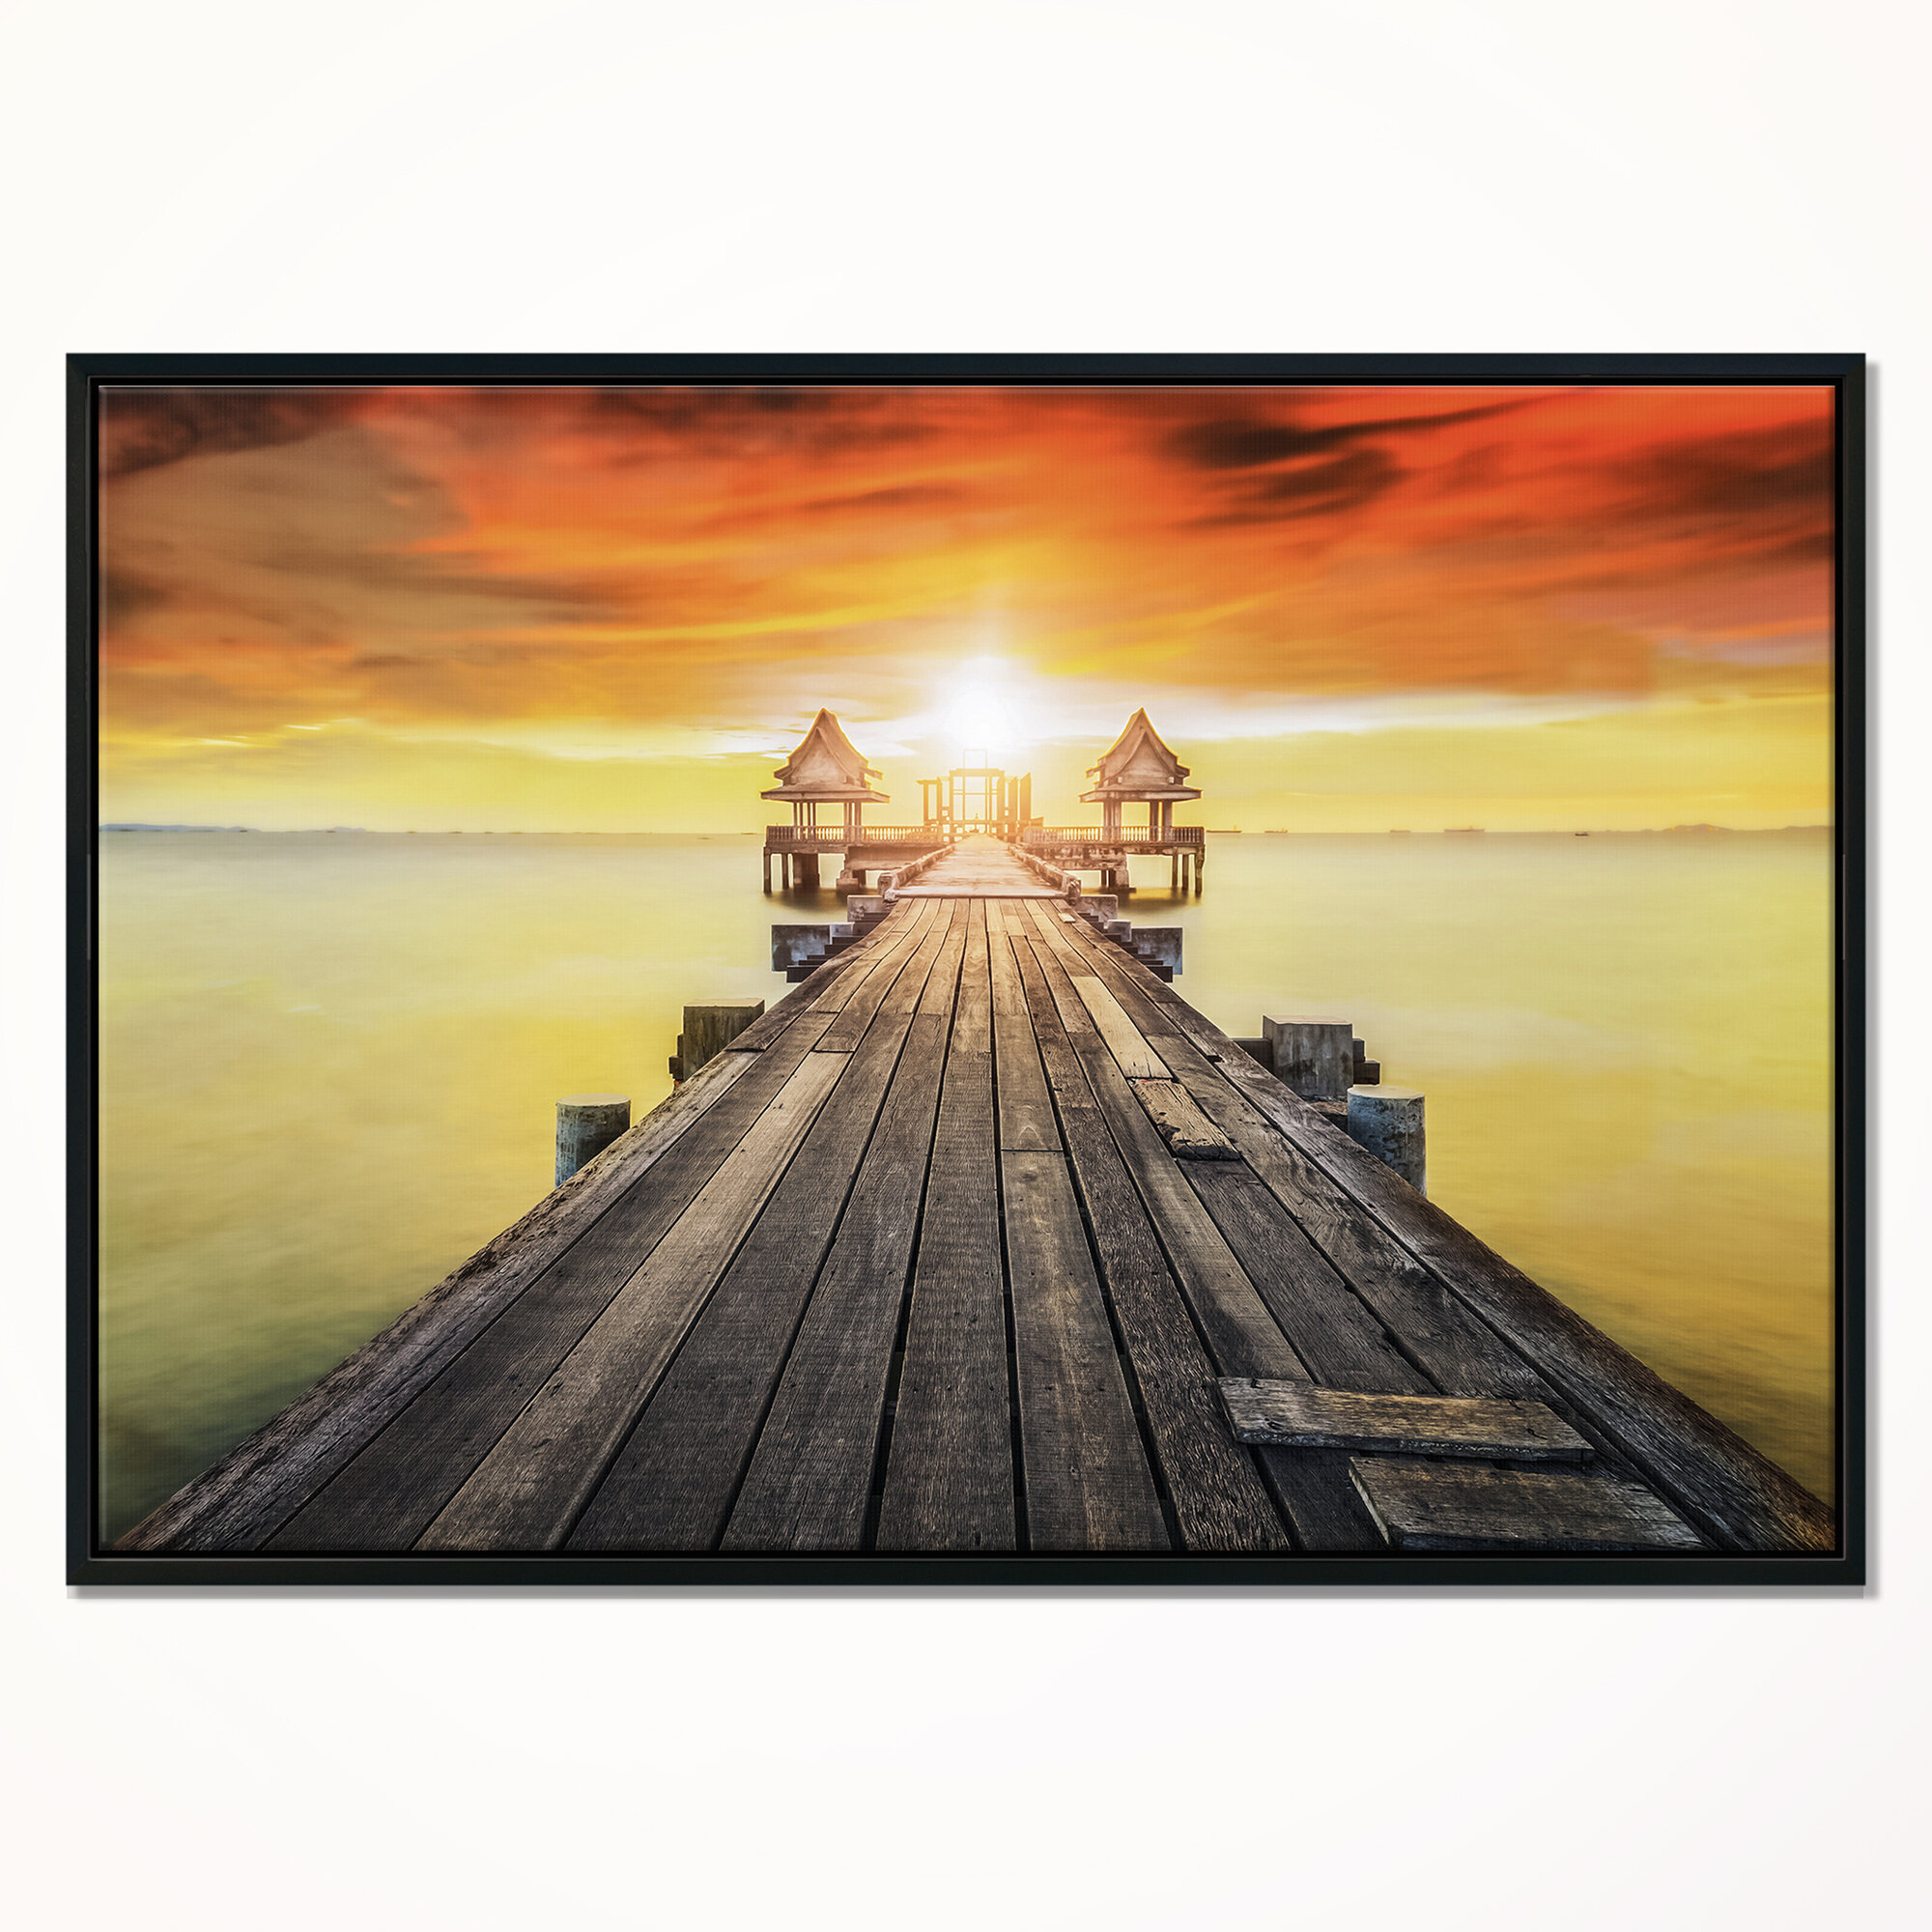 East Urban Home Huge Wooden Pier Into Yellow Sun Framed Graphic Art Print On Wrapped Canvas Wayfair